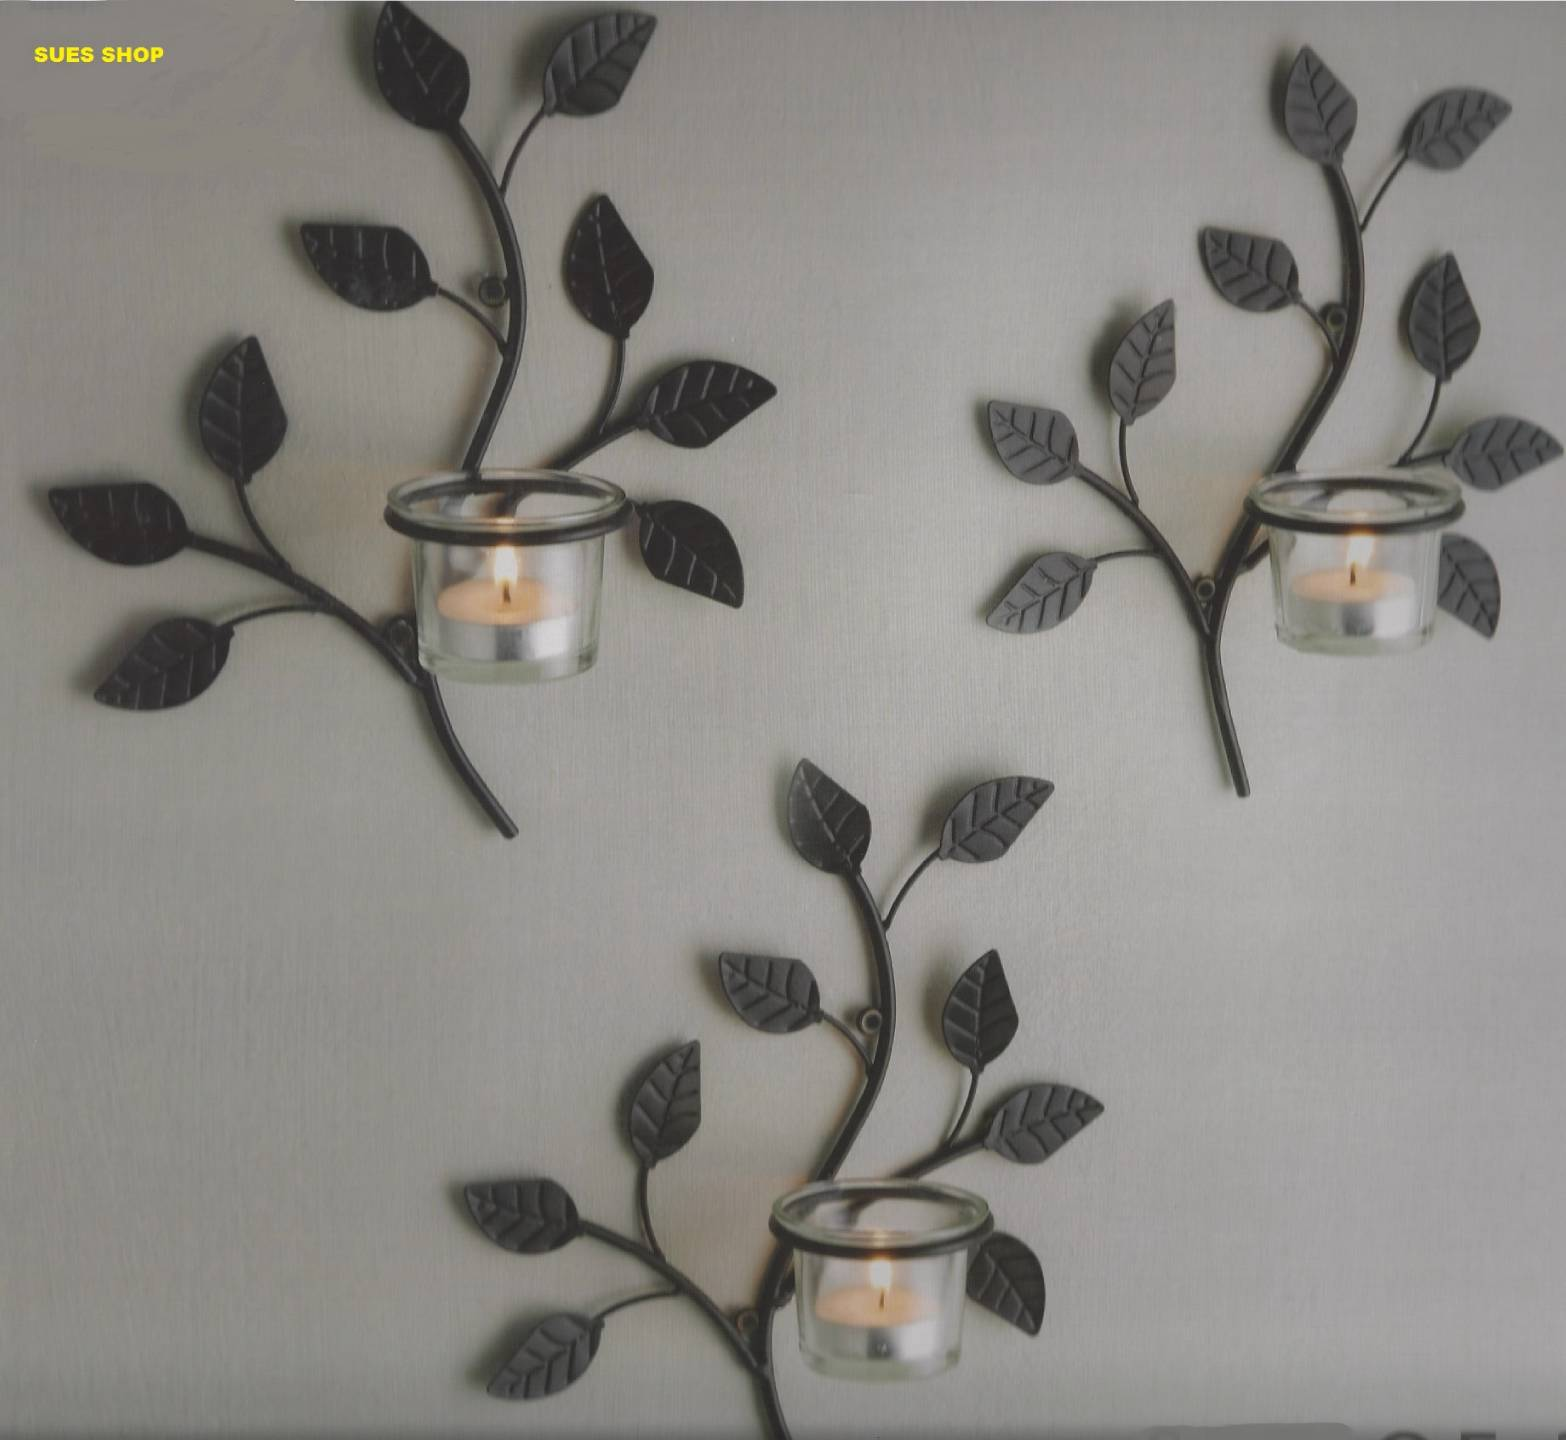 SET-of-3-BLACK-LEAF-SHAPE-WALL-ART-SCONCE-METAL-TEA-LIGHT-GLASS-CANDLE-HOLDERS